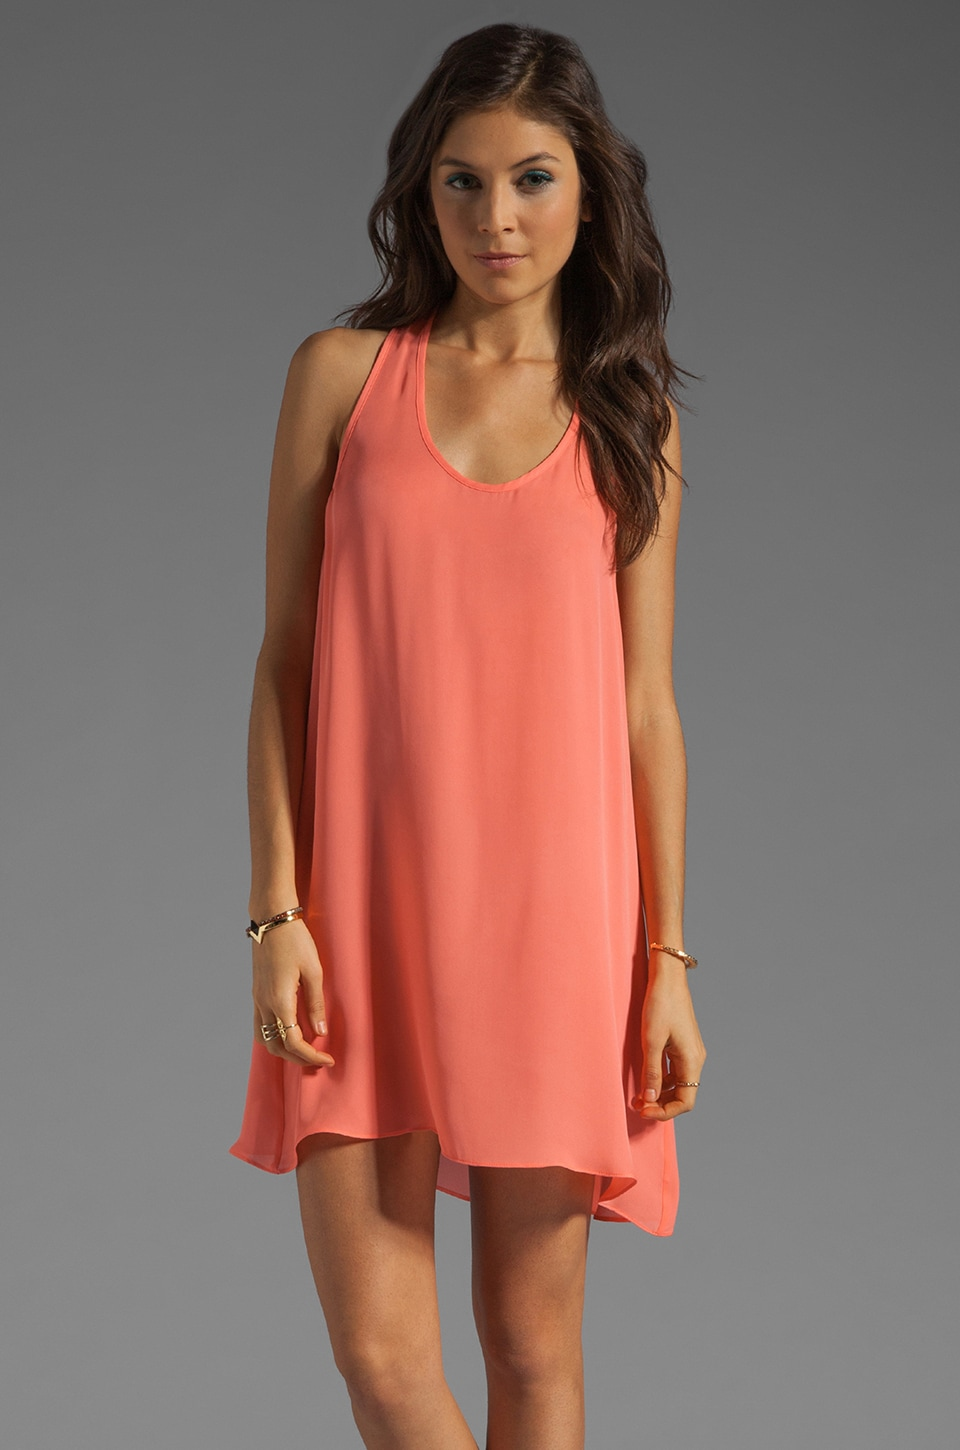 zinke Lulu Dress in Sunrise Coral